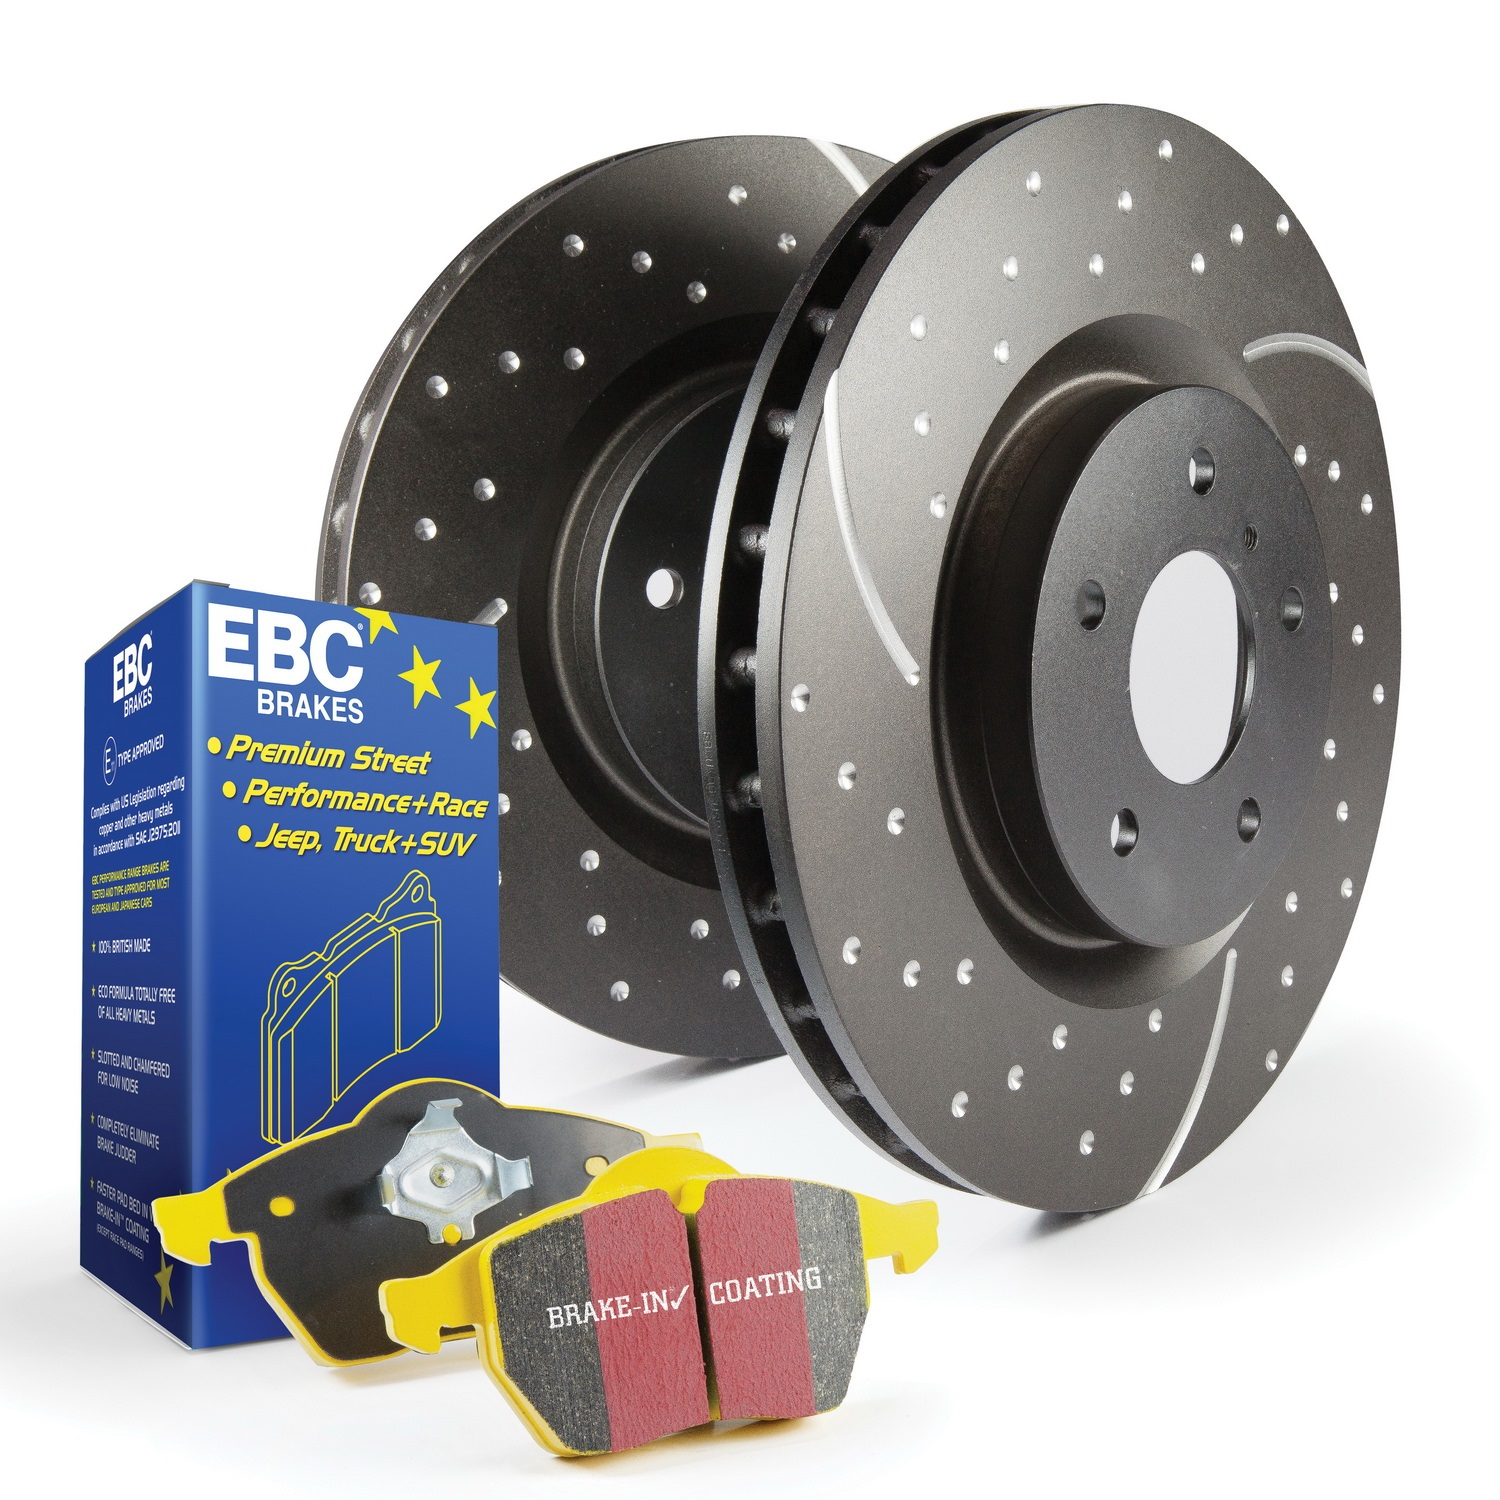 EBC Brakes S5KF1885 S5 Kits Yellowstuff And GD Rotors Fits 11-12 Taurus